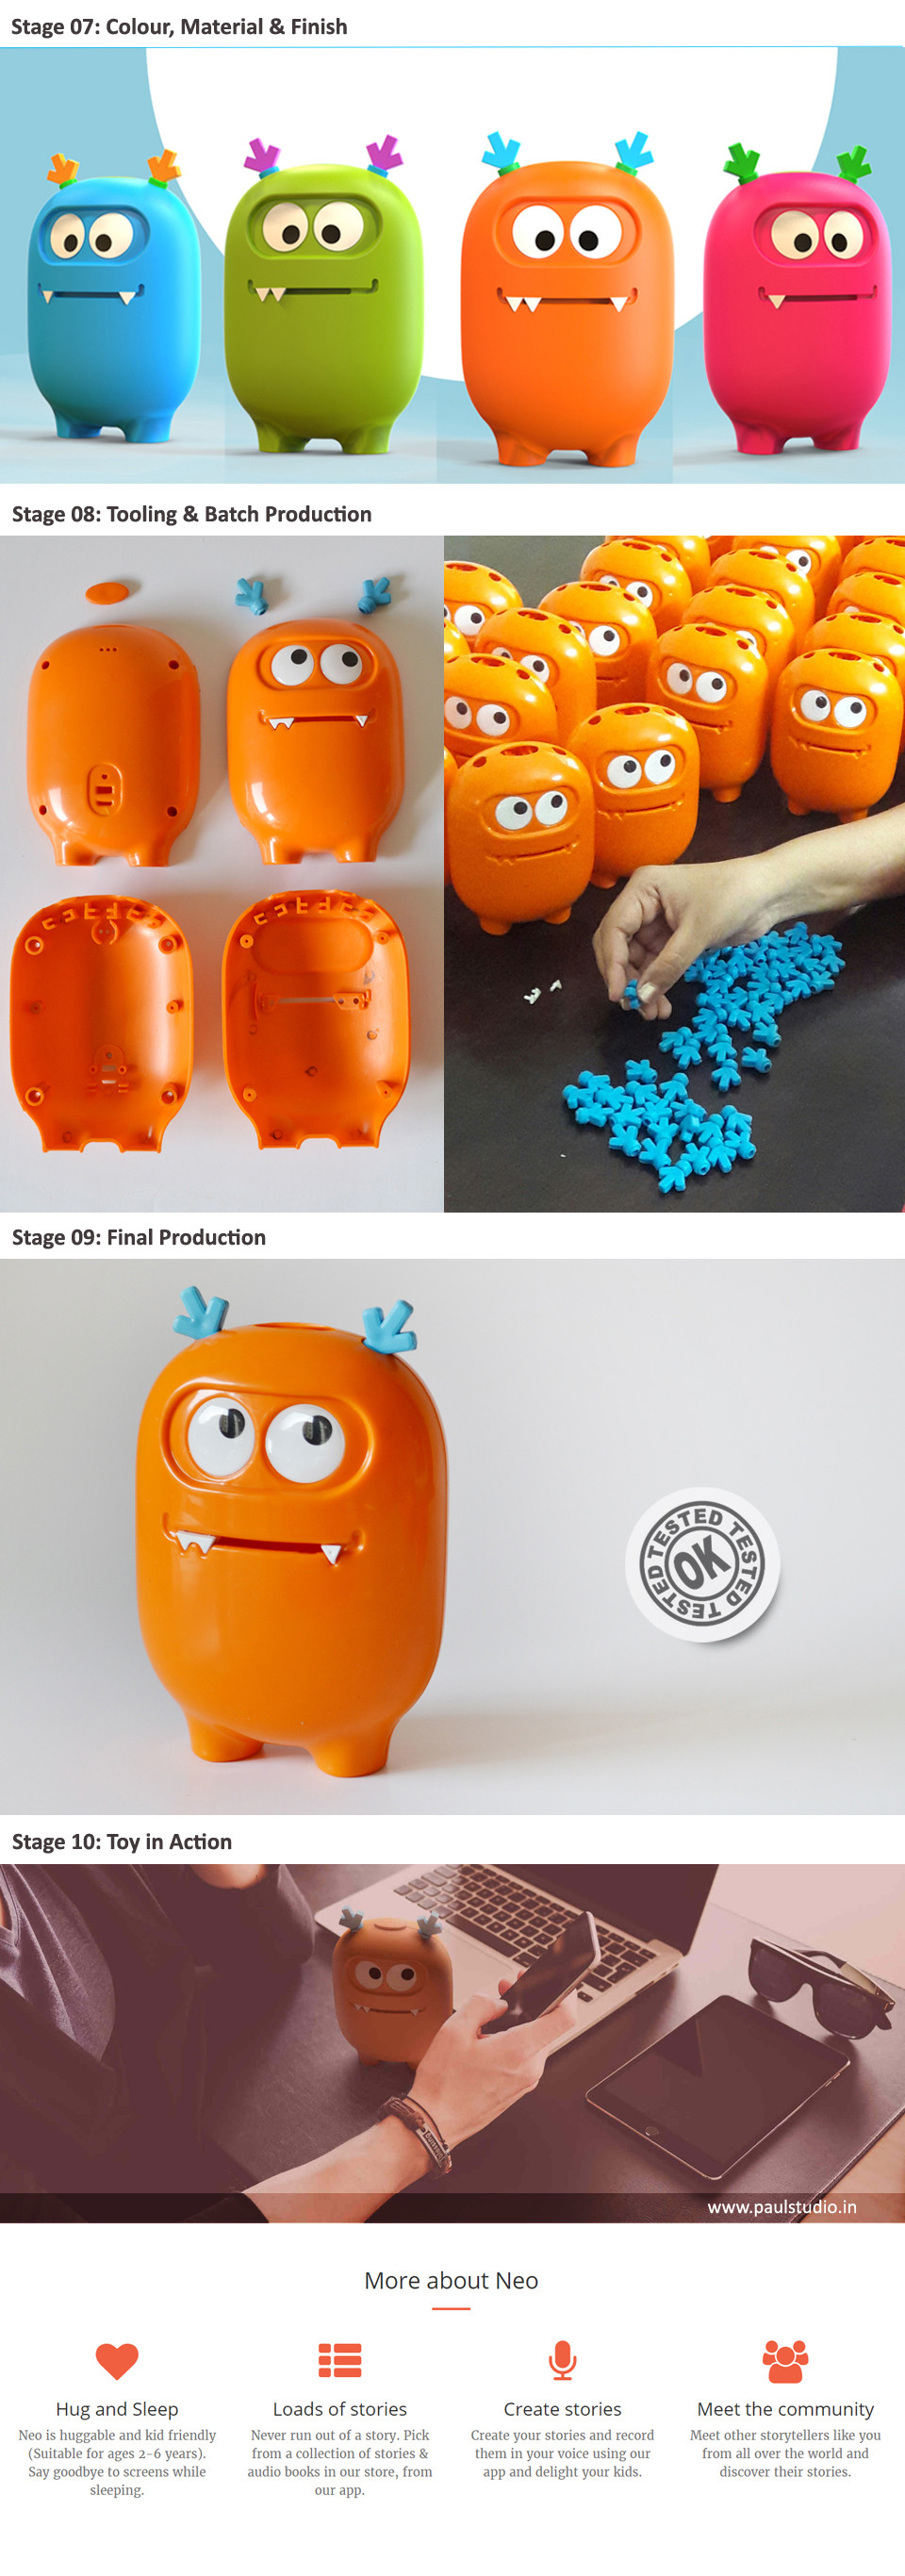 NEO-03-complete-Toy-design-and-manufactu